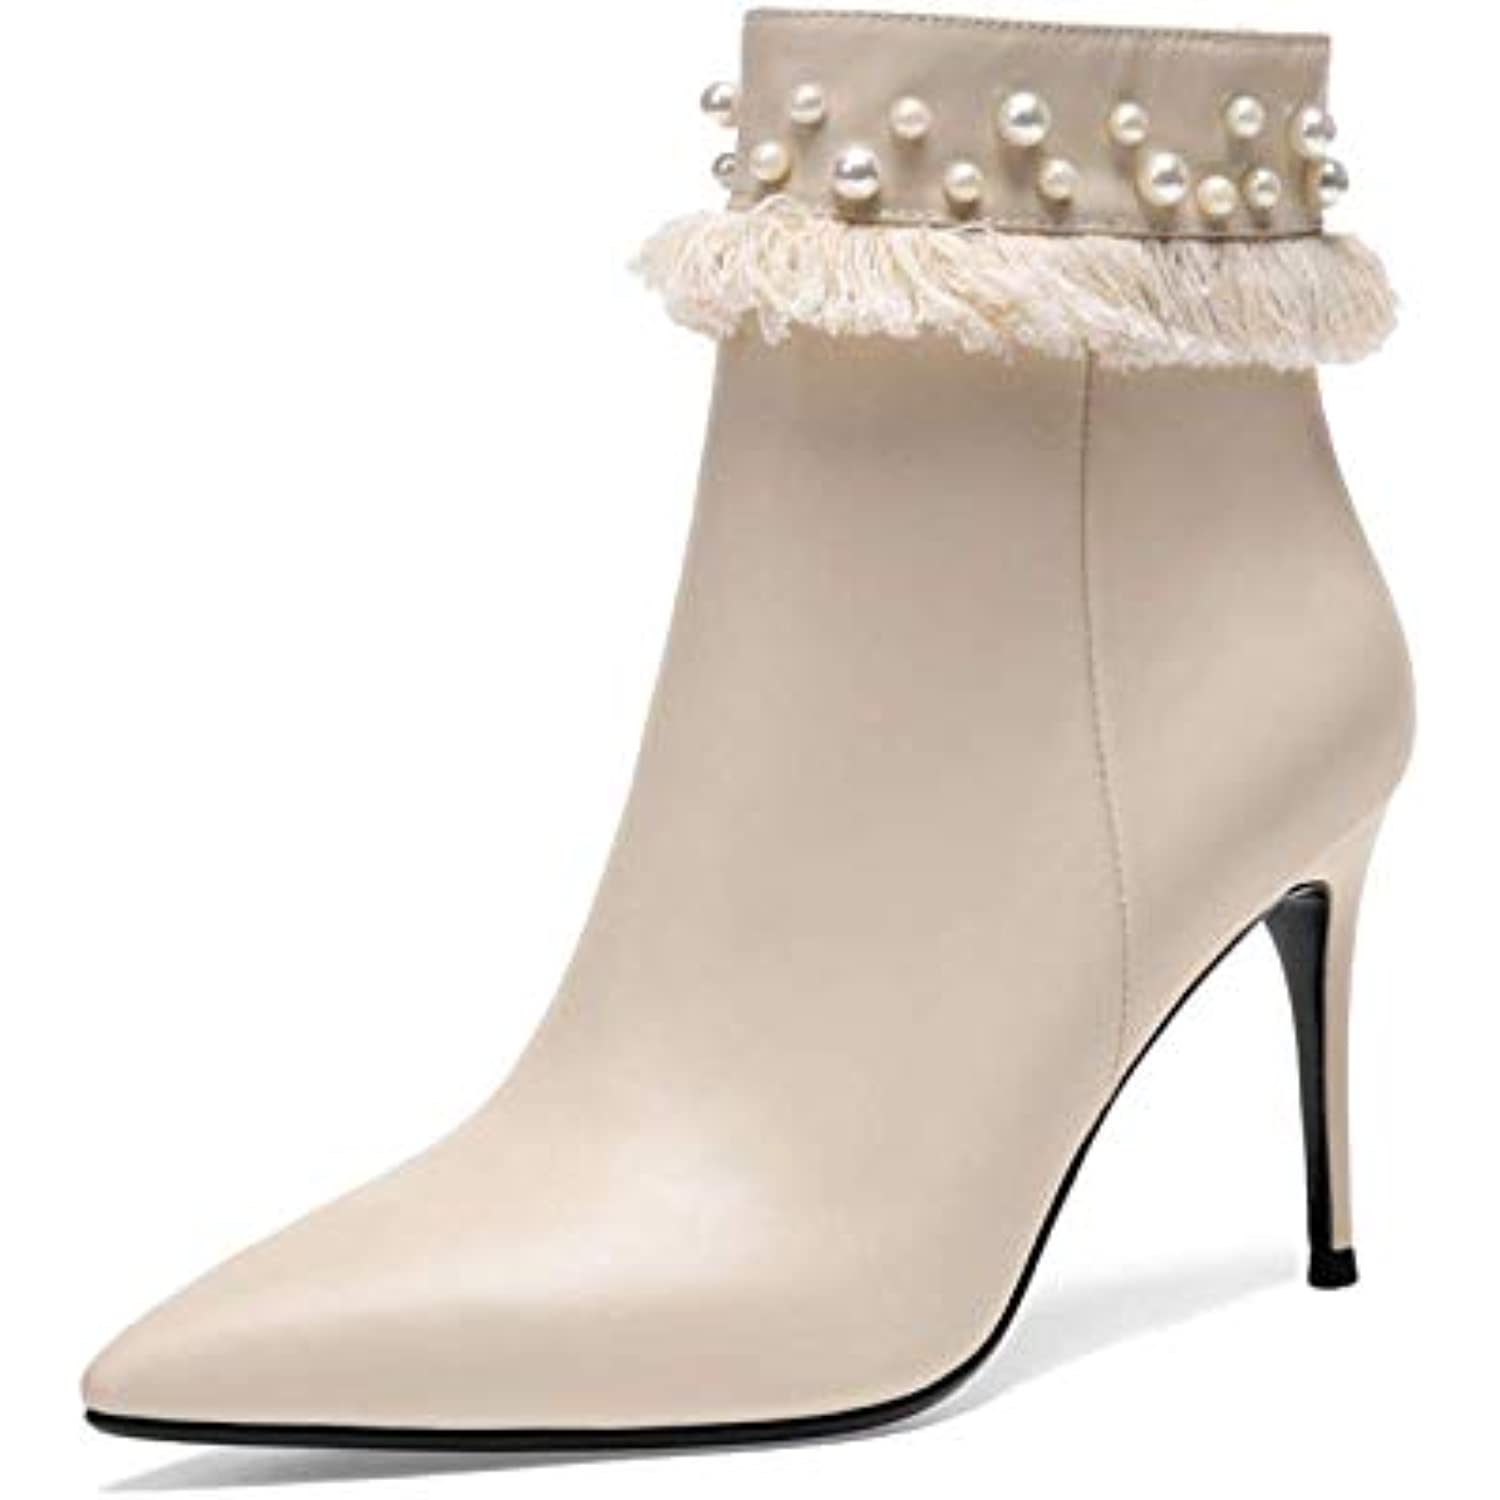 Glands Bout Zpedy Bottines Mode Chaussures 4IqAqf5x